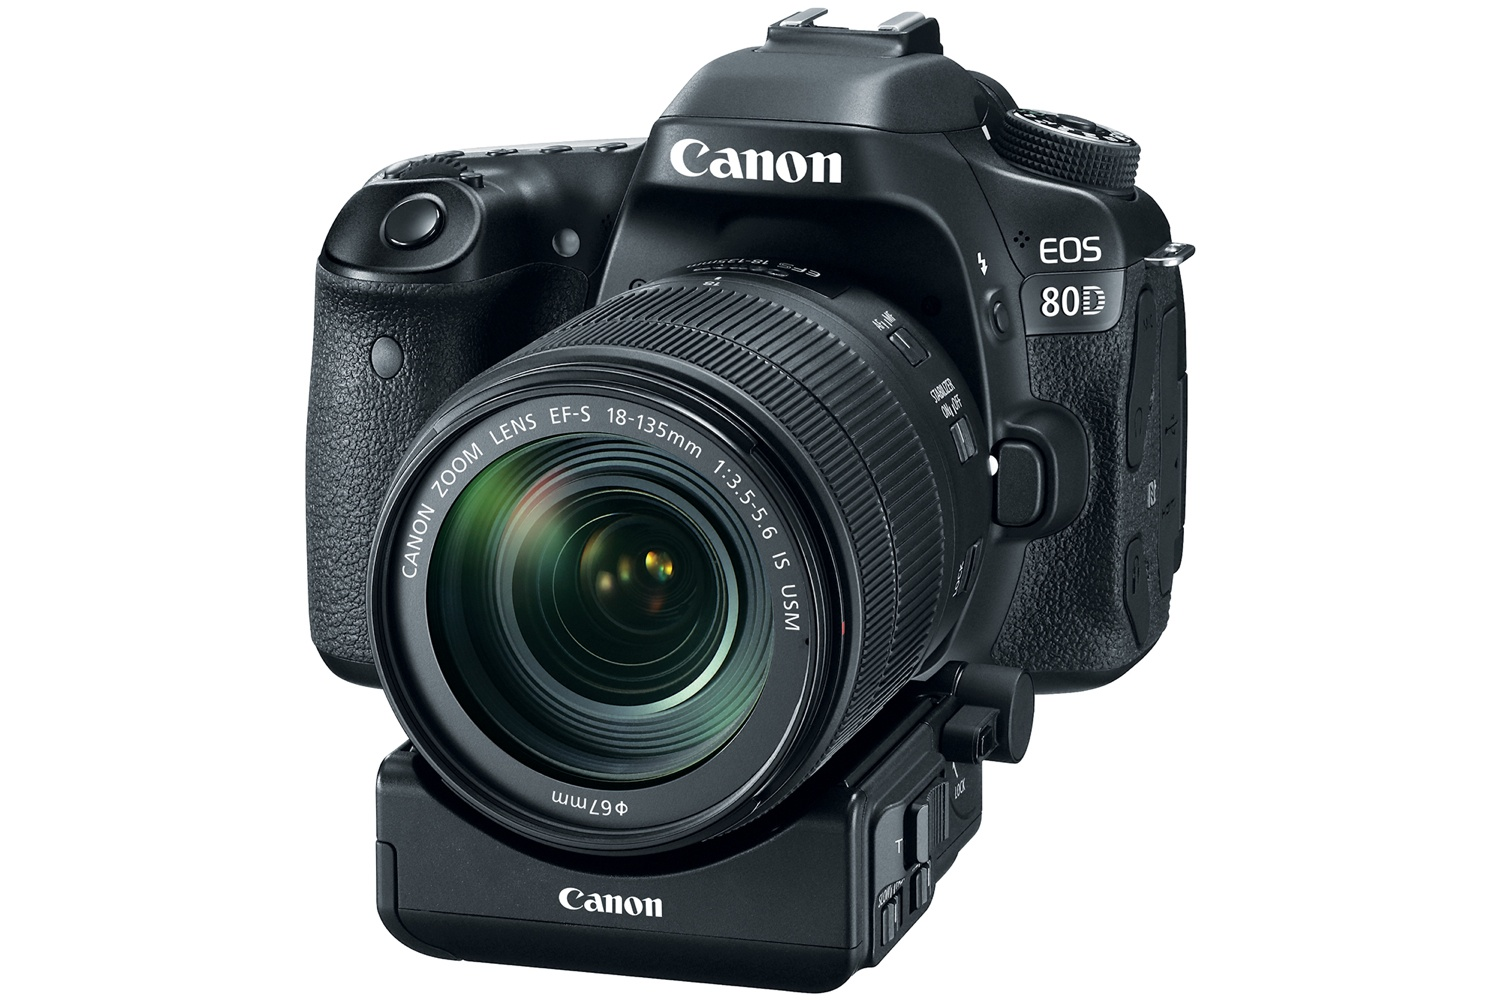 canon-eos-80d-dslr-camera-articles-on-cpn